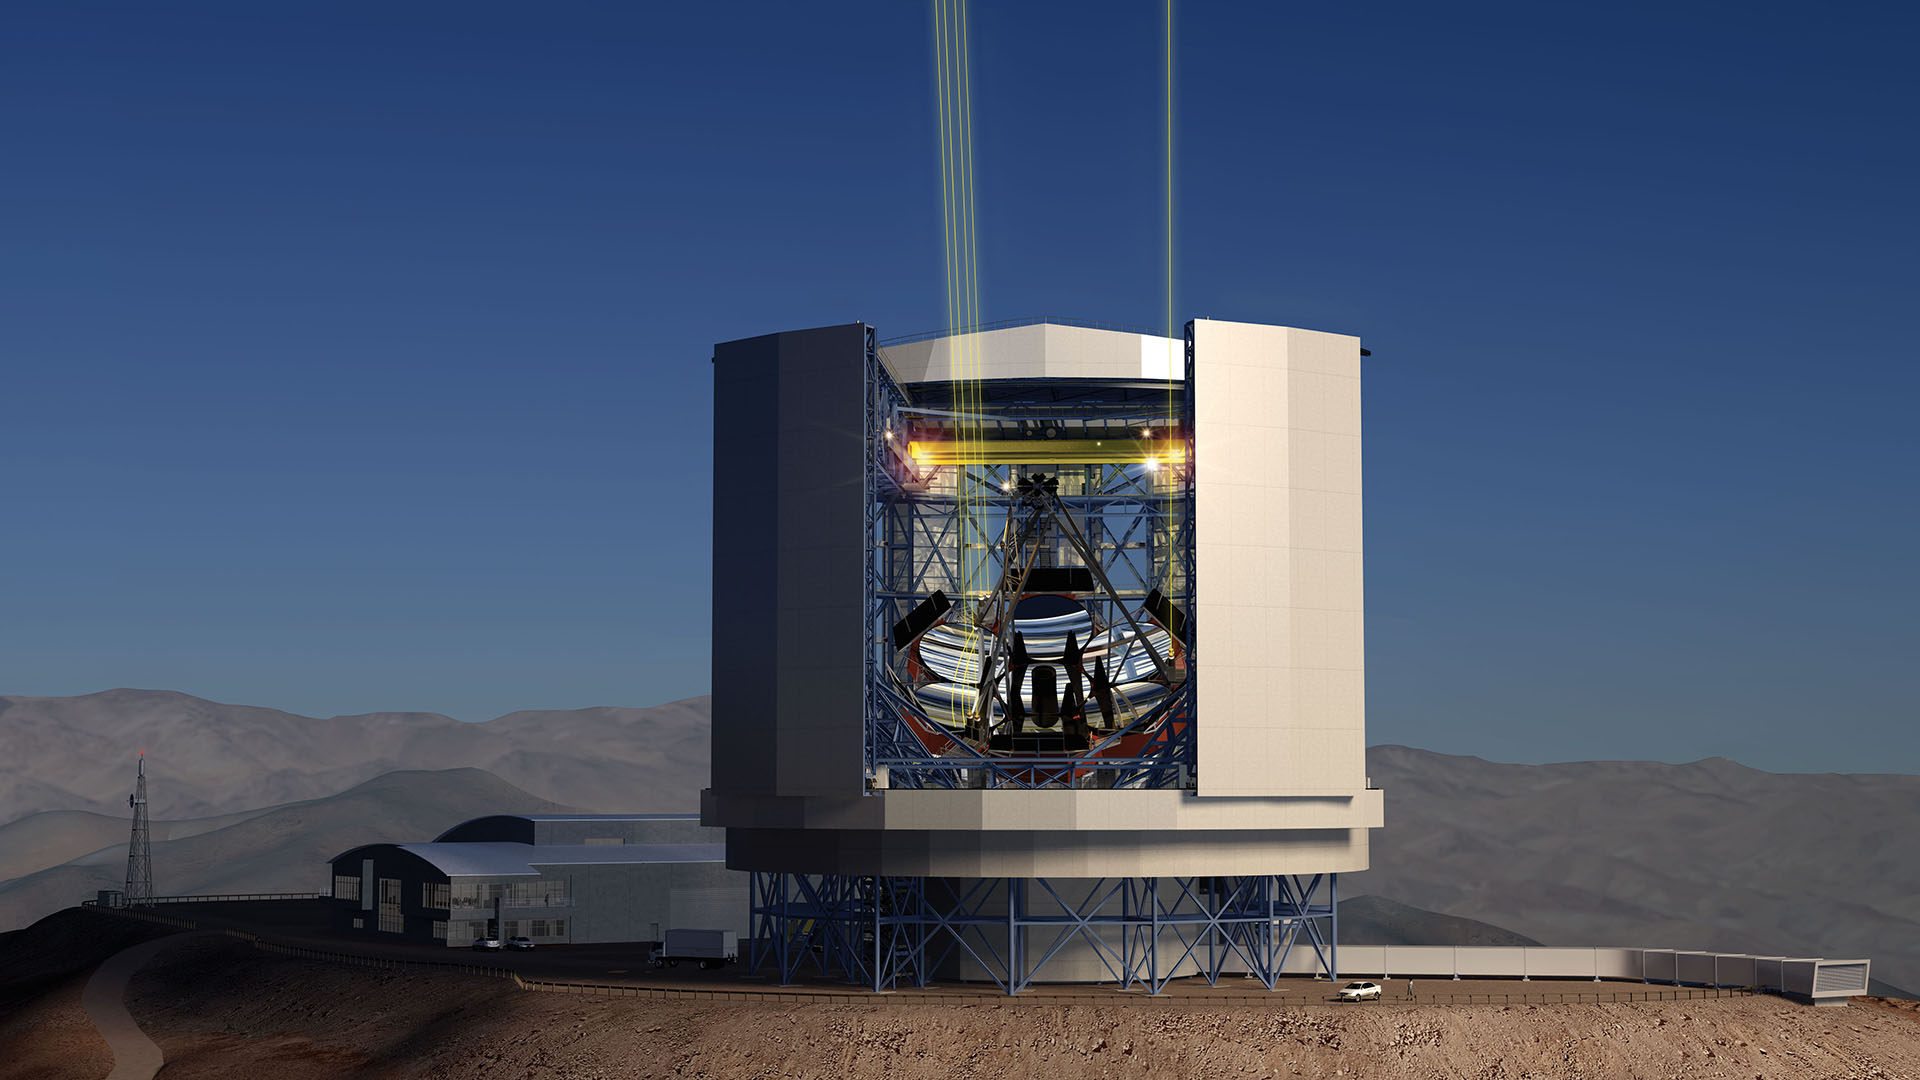 The Giant Magellan Telescope will be constructed in the Las Campanas Observatory in Chile and will be commissioned in 2022.